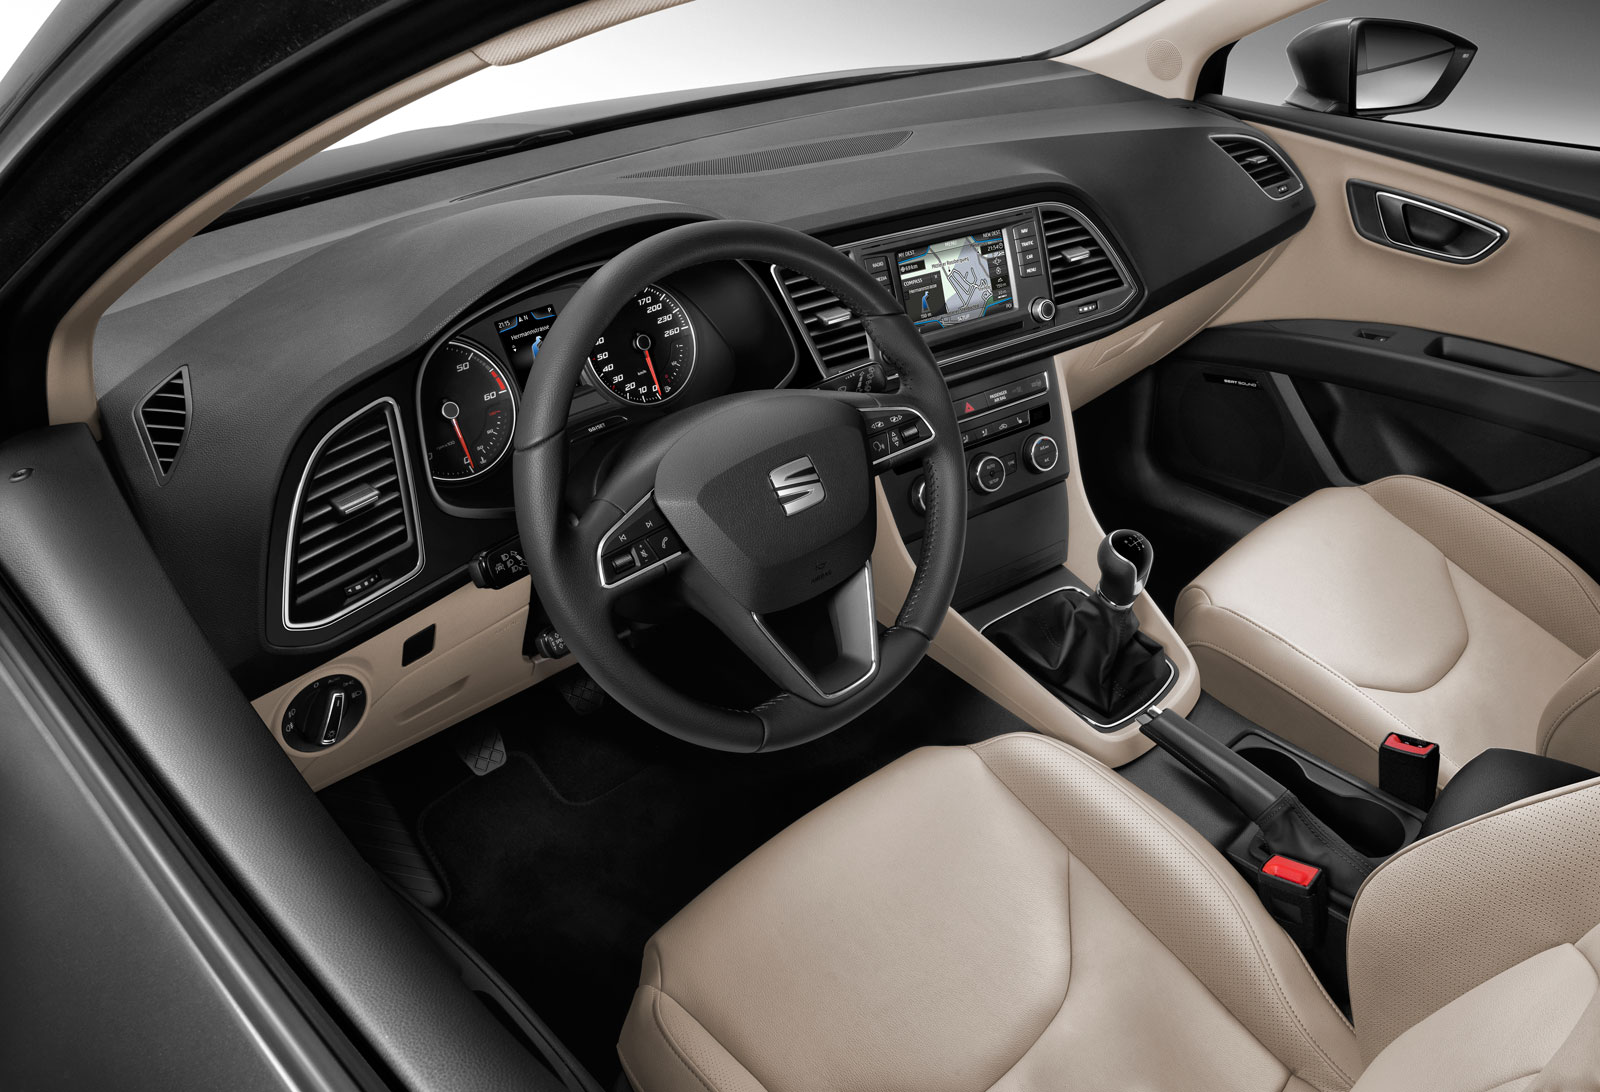 Seat leon st interior car body design - Seat leon interior ...